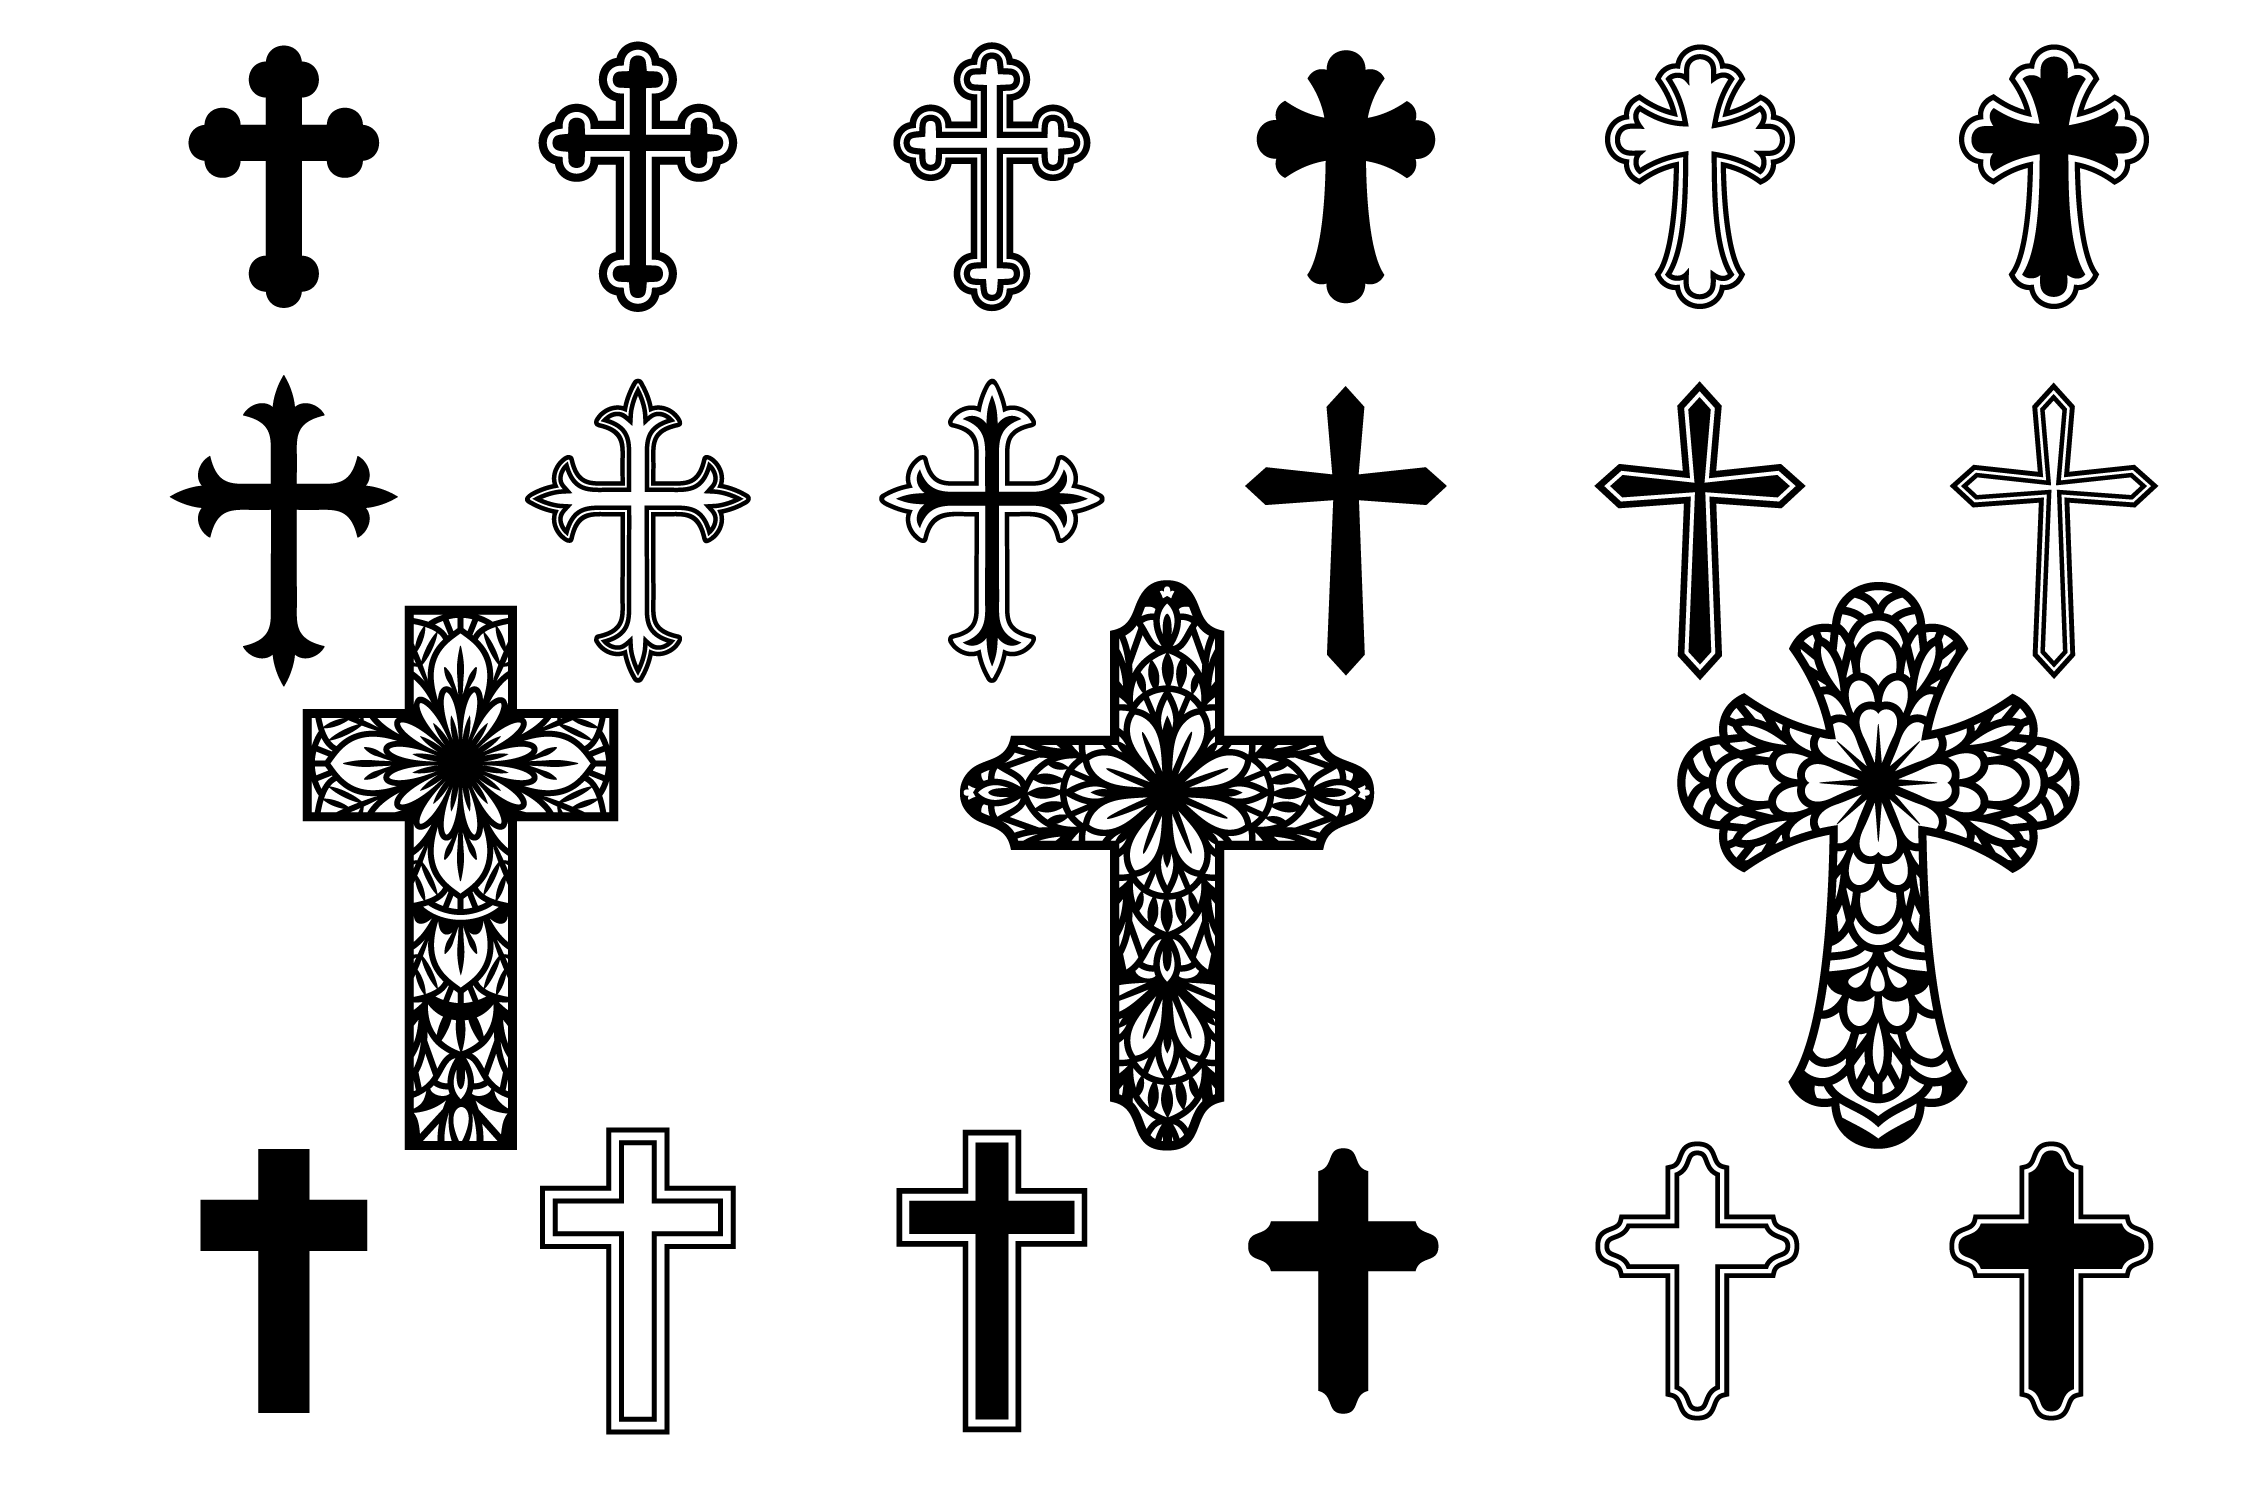 Cross clipart image image royalty free stock Cross SVG, Crosses Clipart, Christian Svg Files image royalty free stock